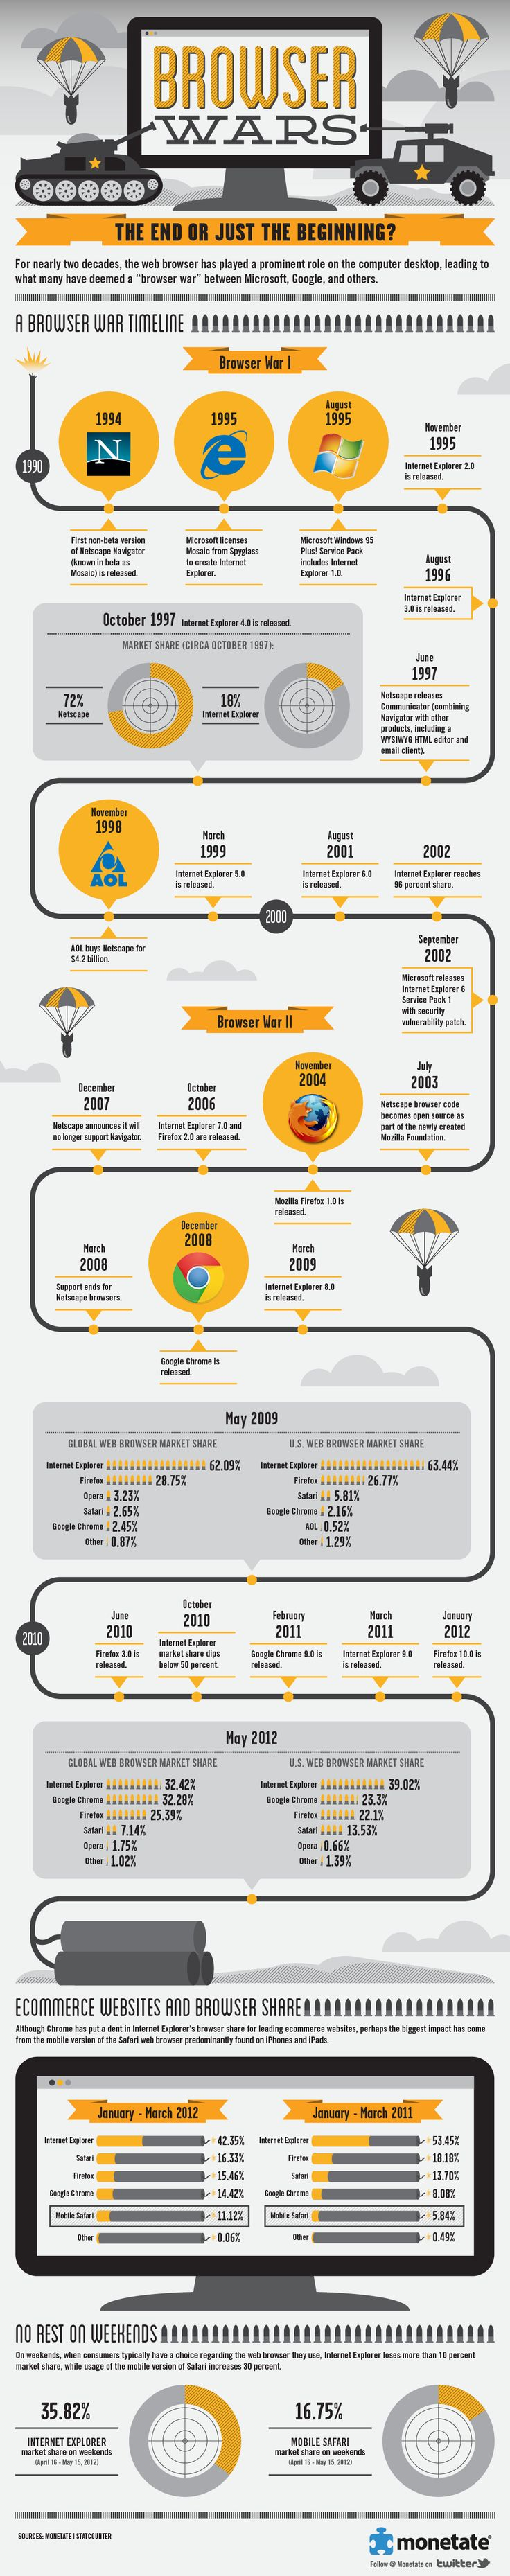 Browser Wars: The End or Just the Beginning? A Monetate Infographic: War, Social Media, Los Navegador, Of The, Web Browser, Browserwar, Socialmedia, Browser War, War